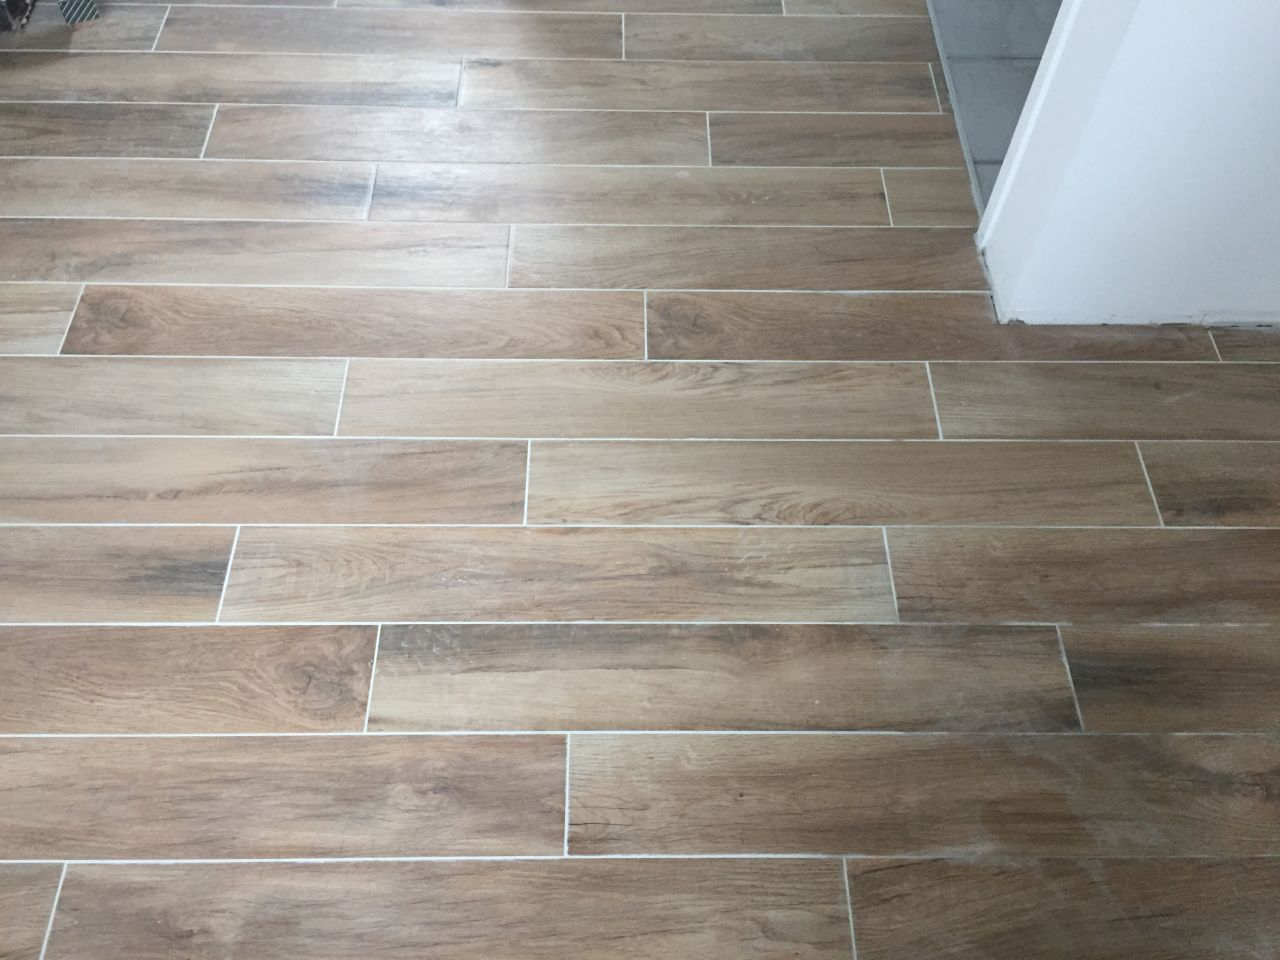 Photo maison carrelage imitation parquet for Parquet carrelage